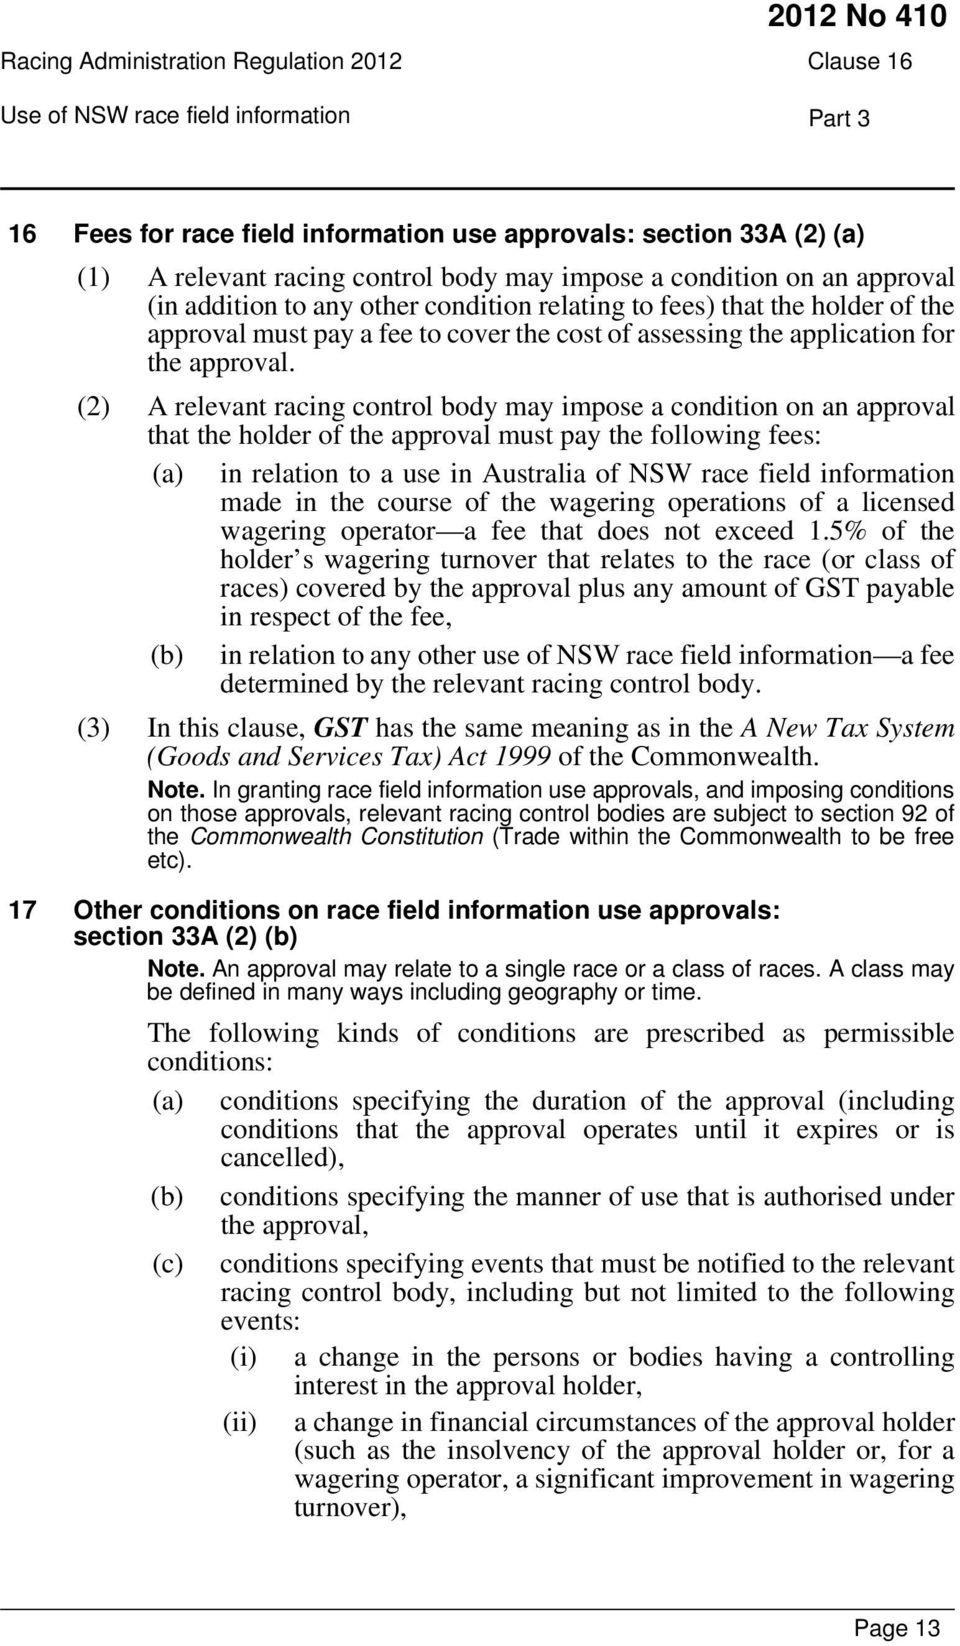 (2) A relevant racing control body may impose a condition on an approval that the holder of the approval must pay the following fees: (a) in relation to a use in Australia of NSW race field